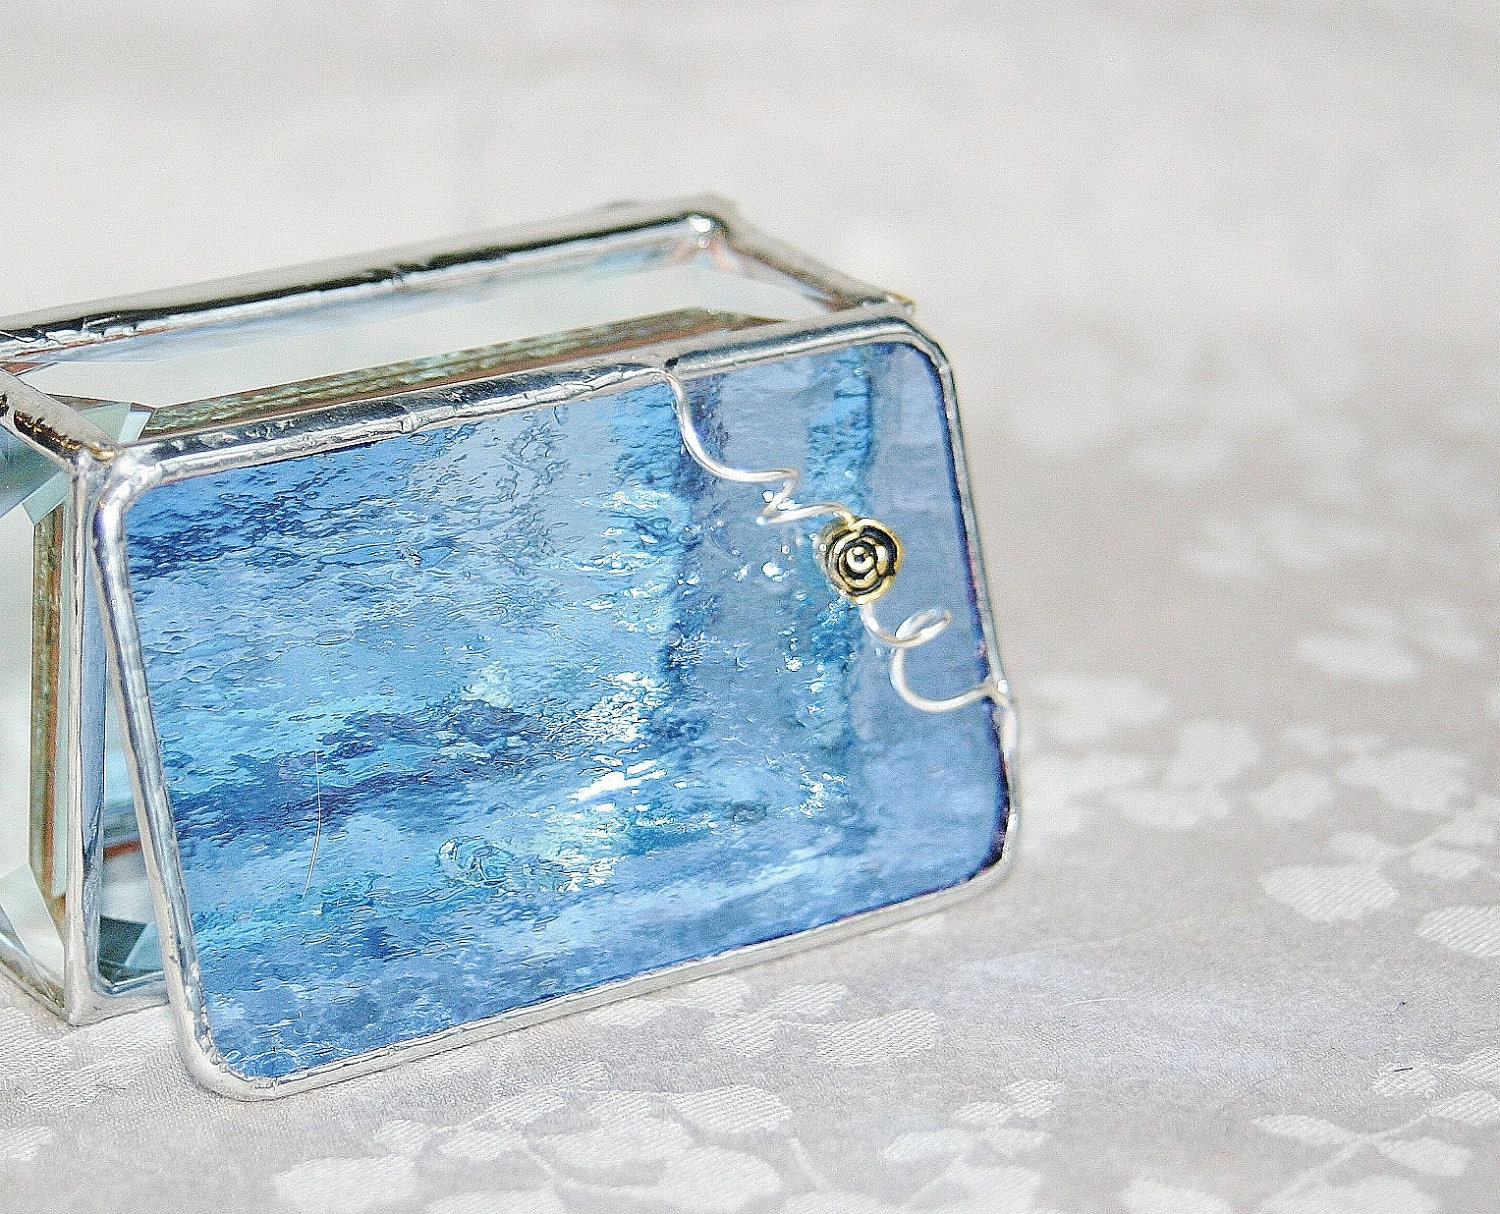 Periwinkle Blue Stained Glass Box 2x3 w/ Pewter-cast Gold Rose Flower Handmade - GaleazGlass